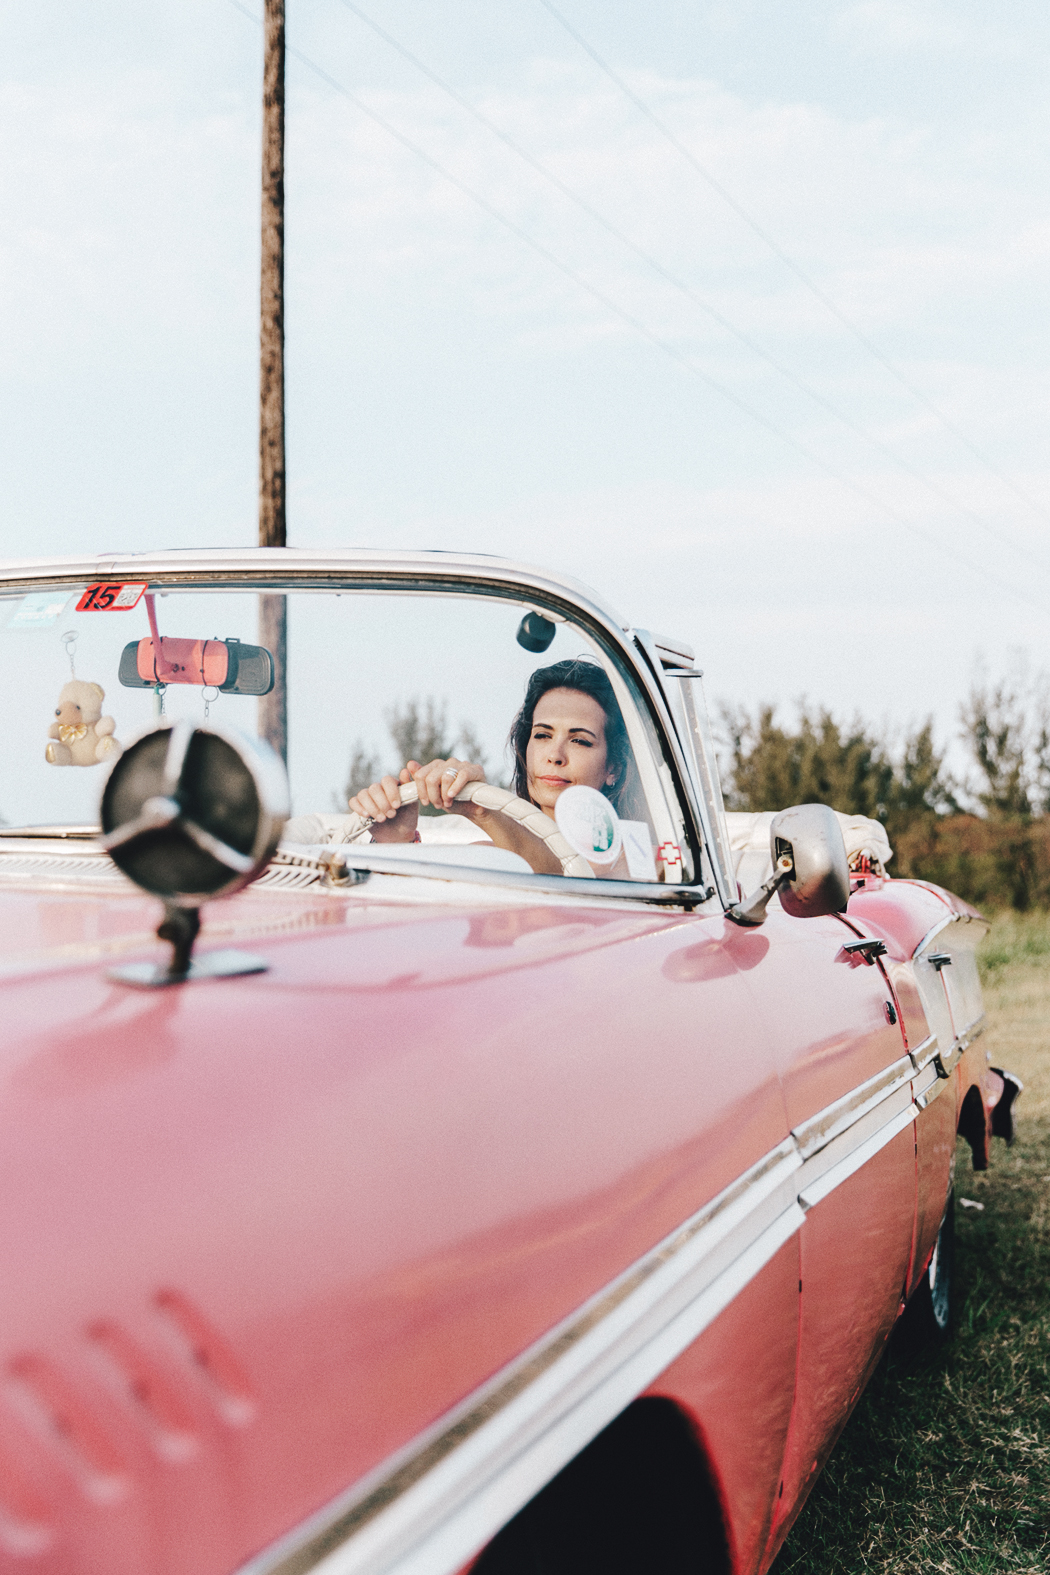 Cuba-Varadero-Vintage_Car-Silver_Dress-Floral_Scarf-Isabel_Marant_Sandals-Outfit-COllage_On_The_Road-